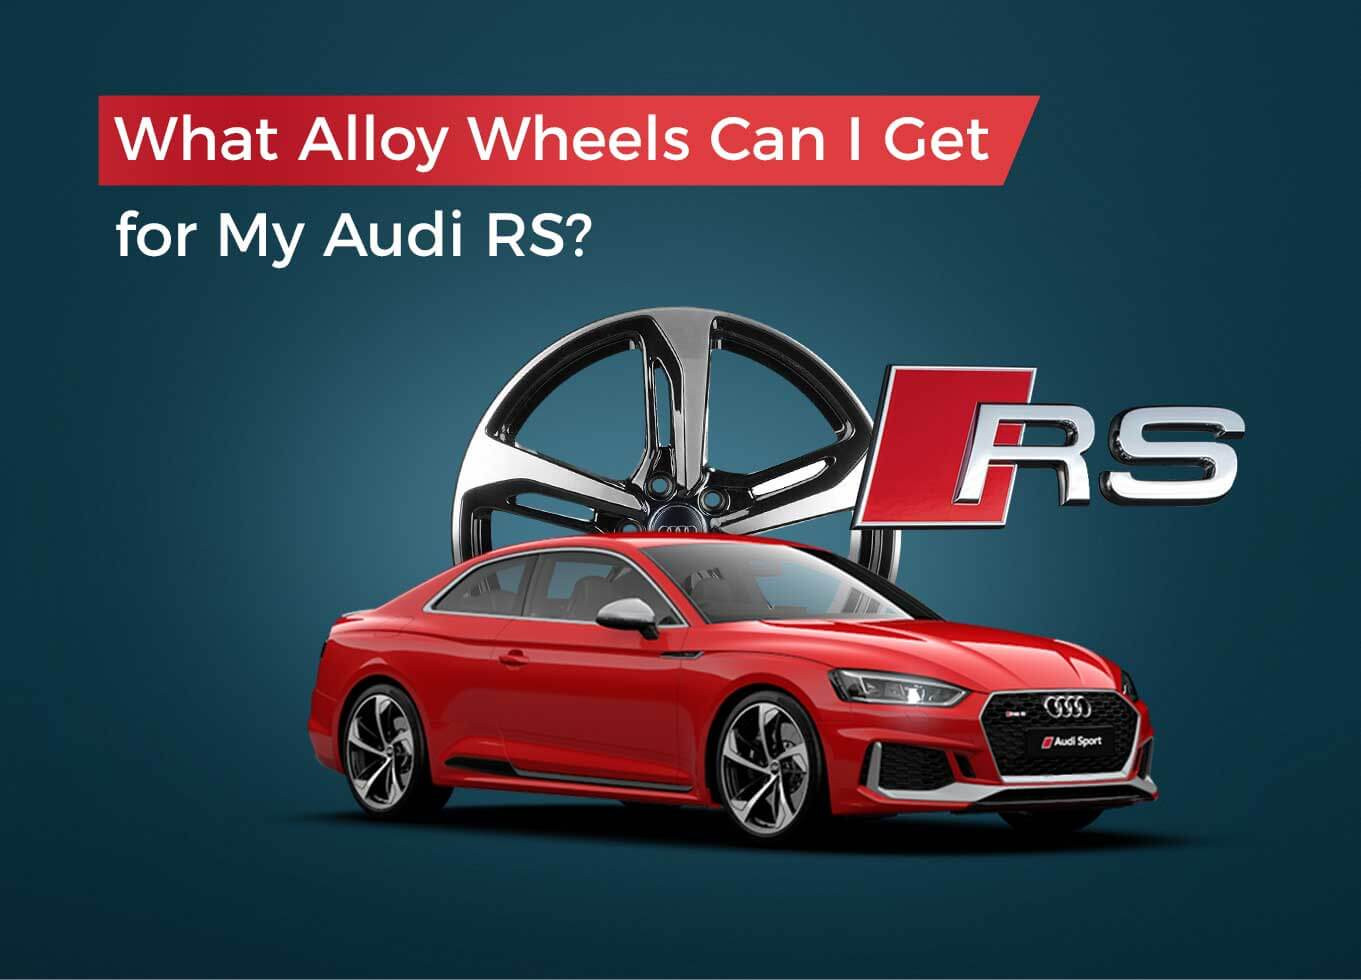 What Alloy Wheels Can I Get for My Audi RS?